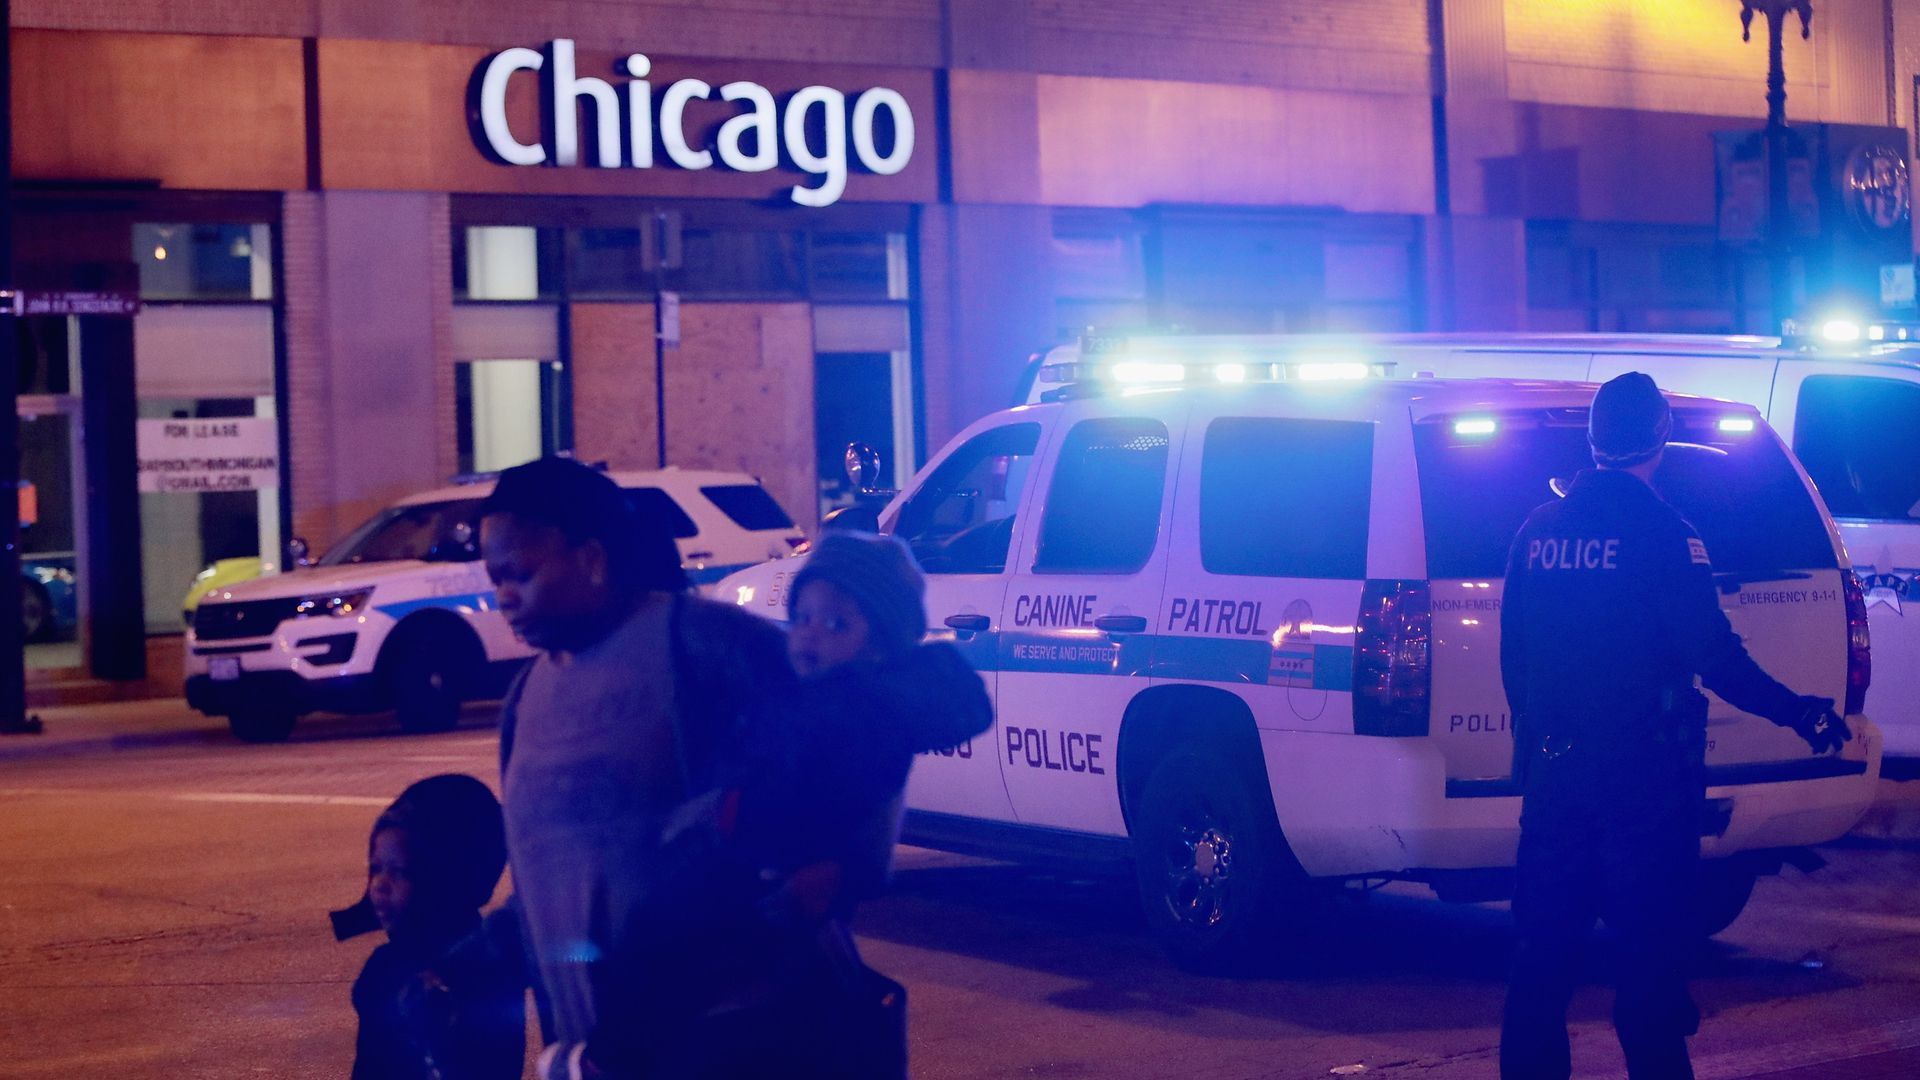 Police secure the scene near Mercy Hospital after a gunman opened fire on November 19, 2018 in Chicago, Illinois